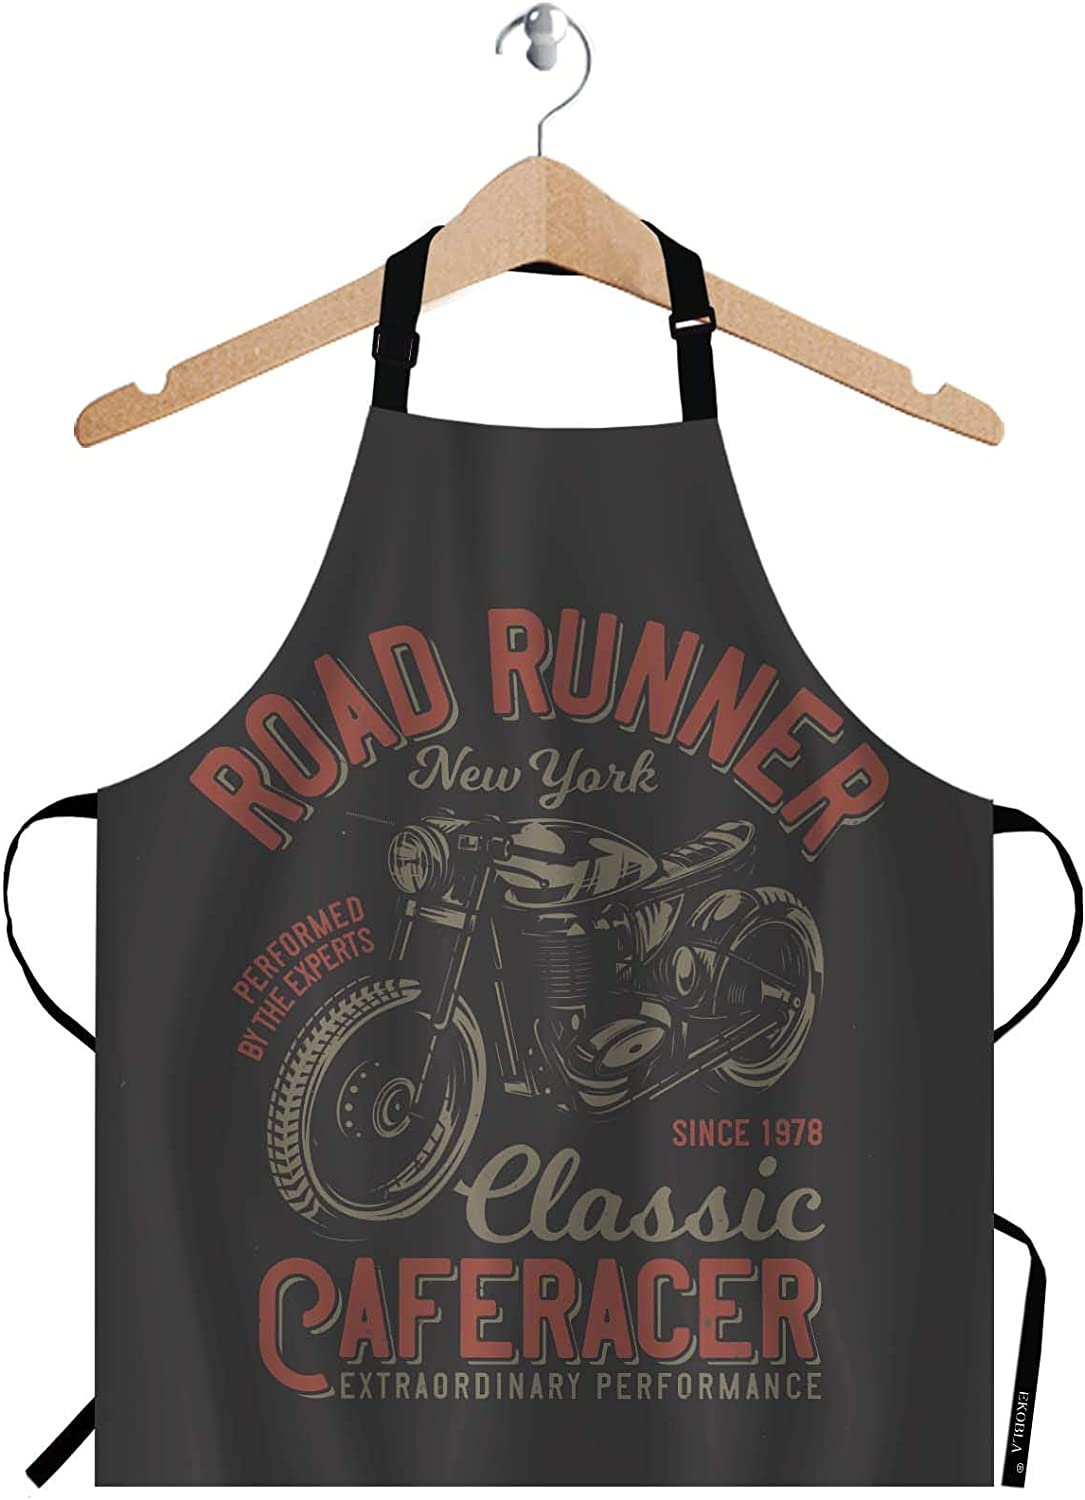 EKOBLA Road Runner Aprons Vintage Retro Style Motorcycle New York Classic Cafe Racer Waterproof Resistant Chef Cooking Kitchen BBQ Adjustable Aprons for Women Men 27x31 Inch